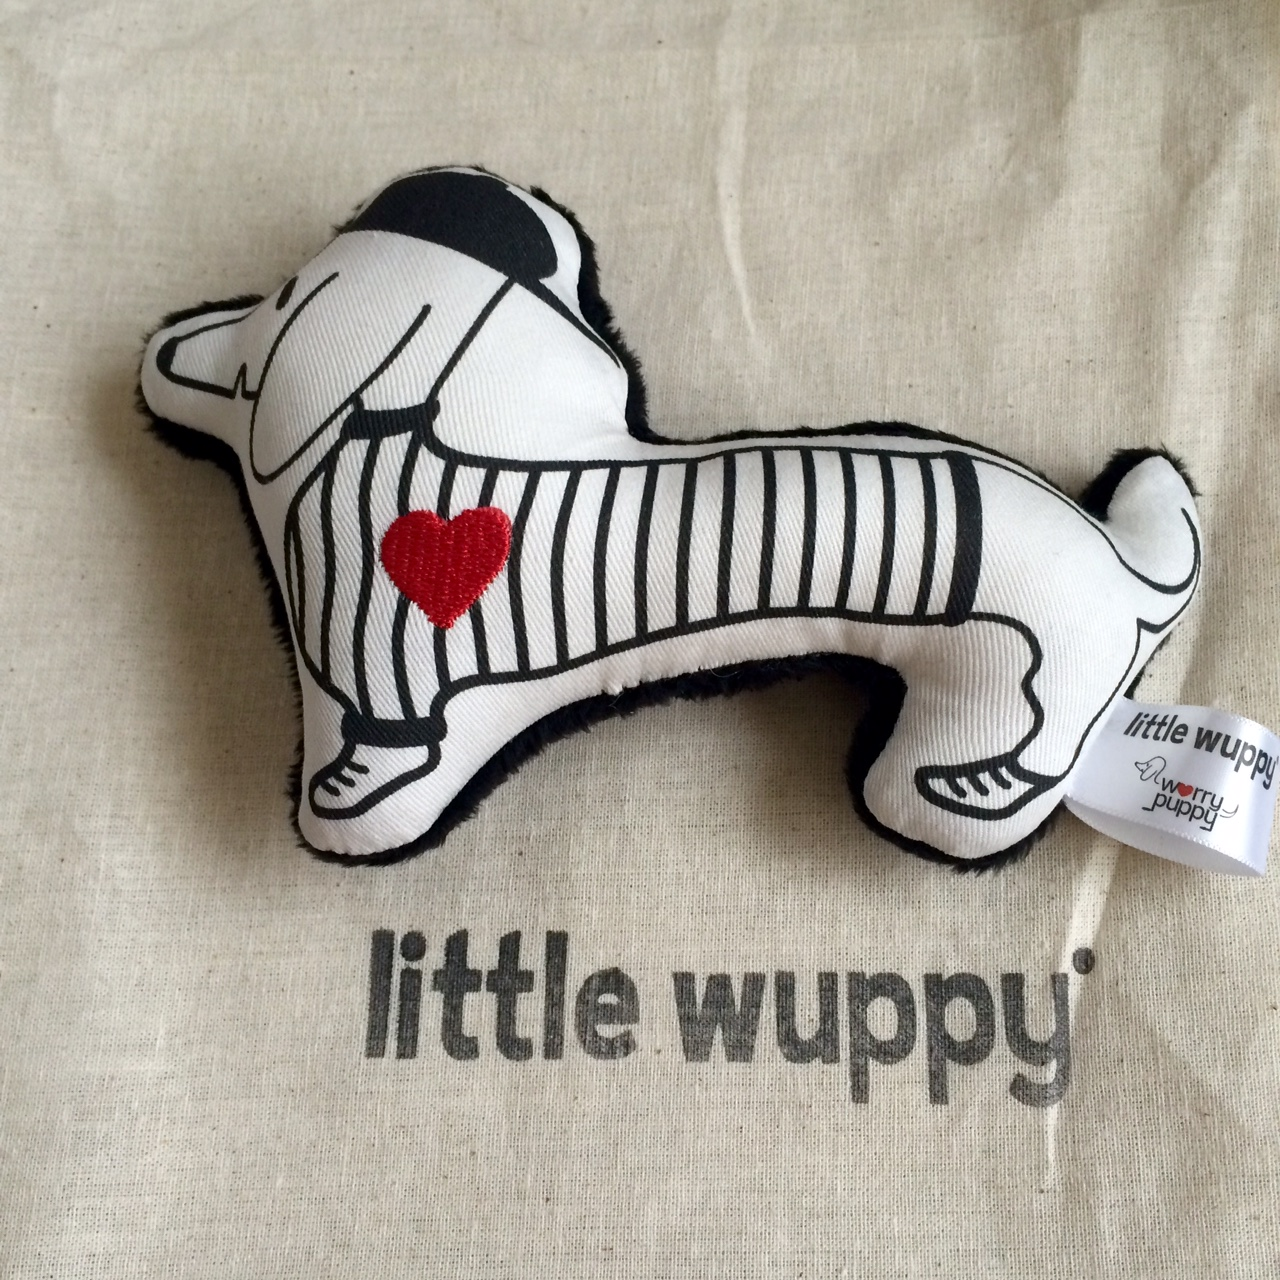 little-wuppy-giveaway-nicky-johnston